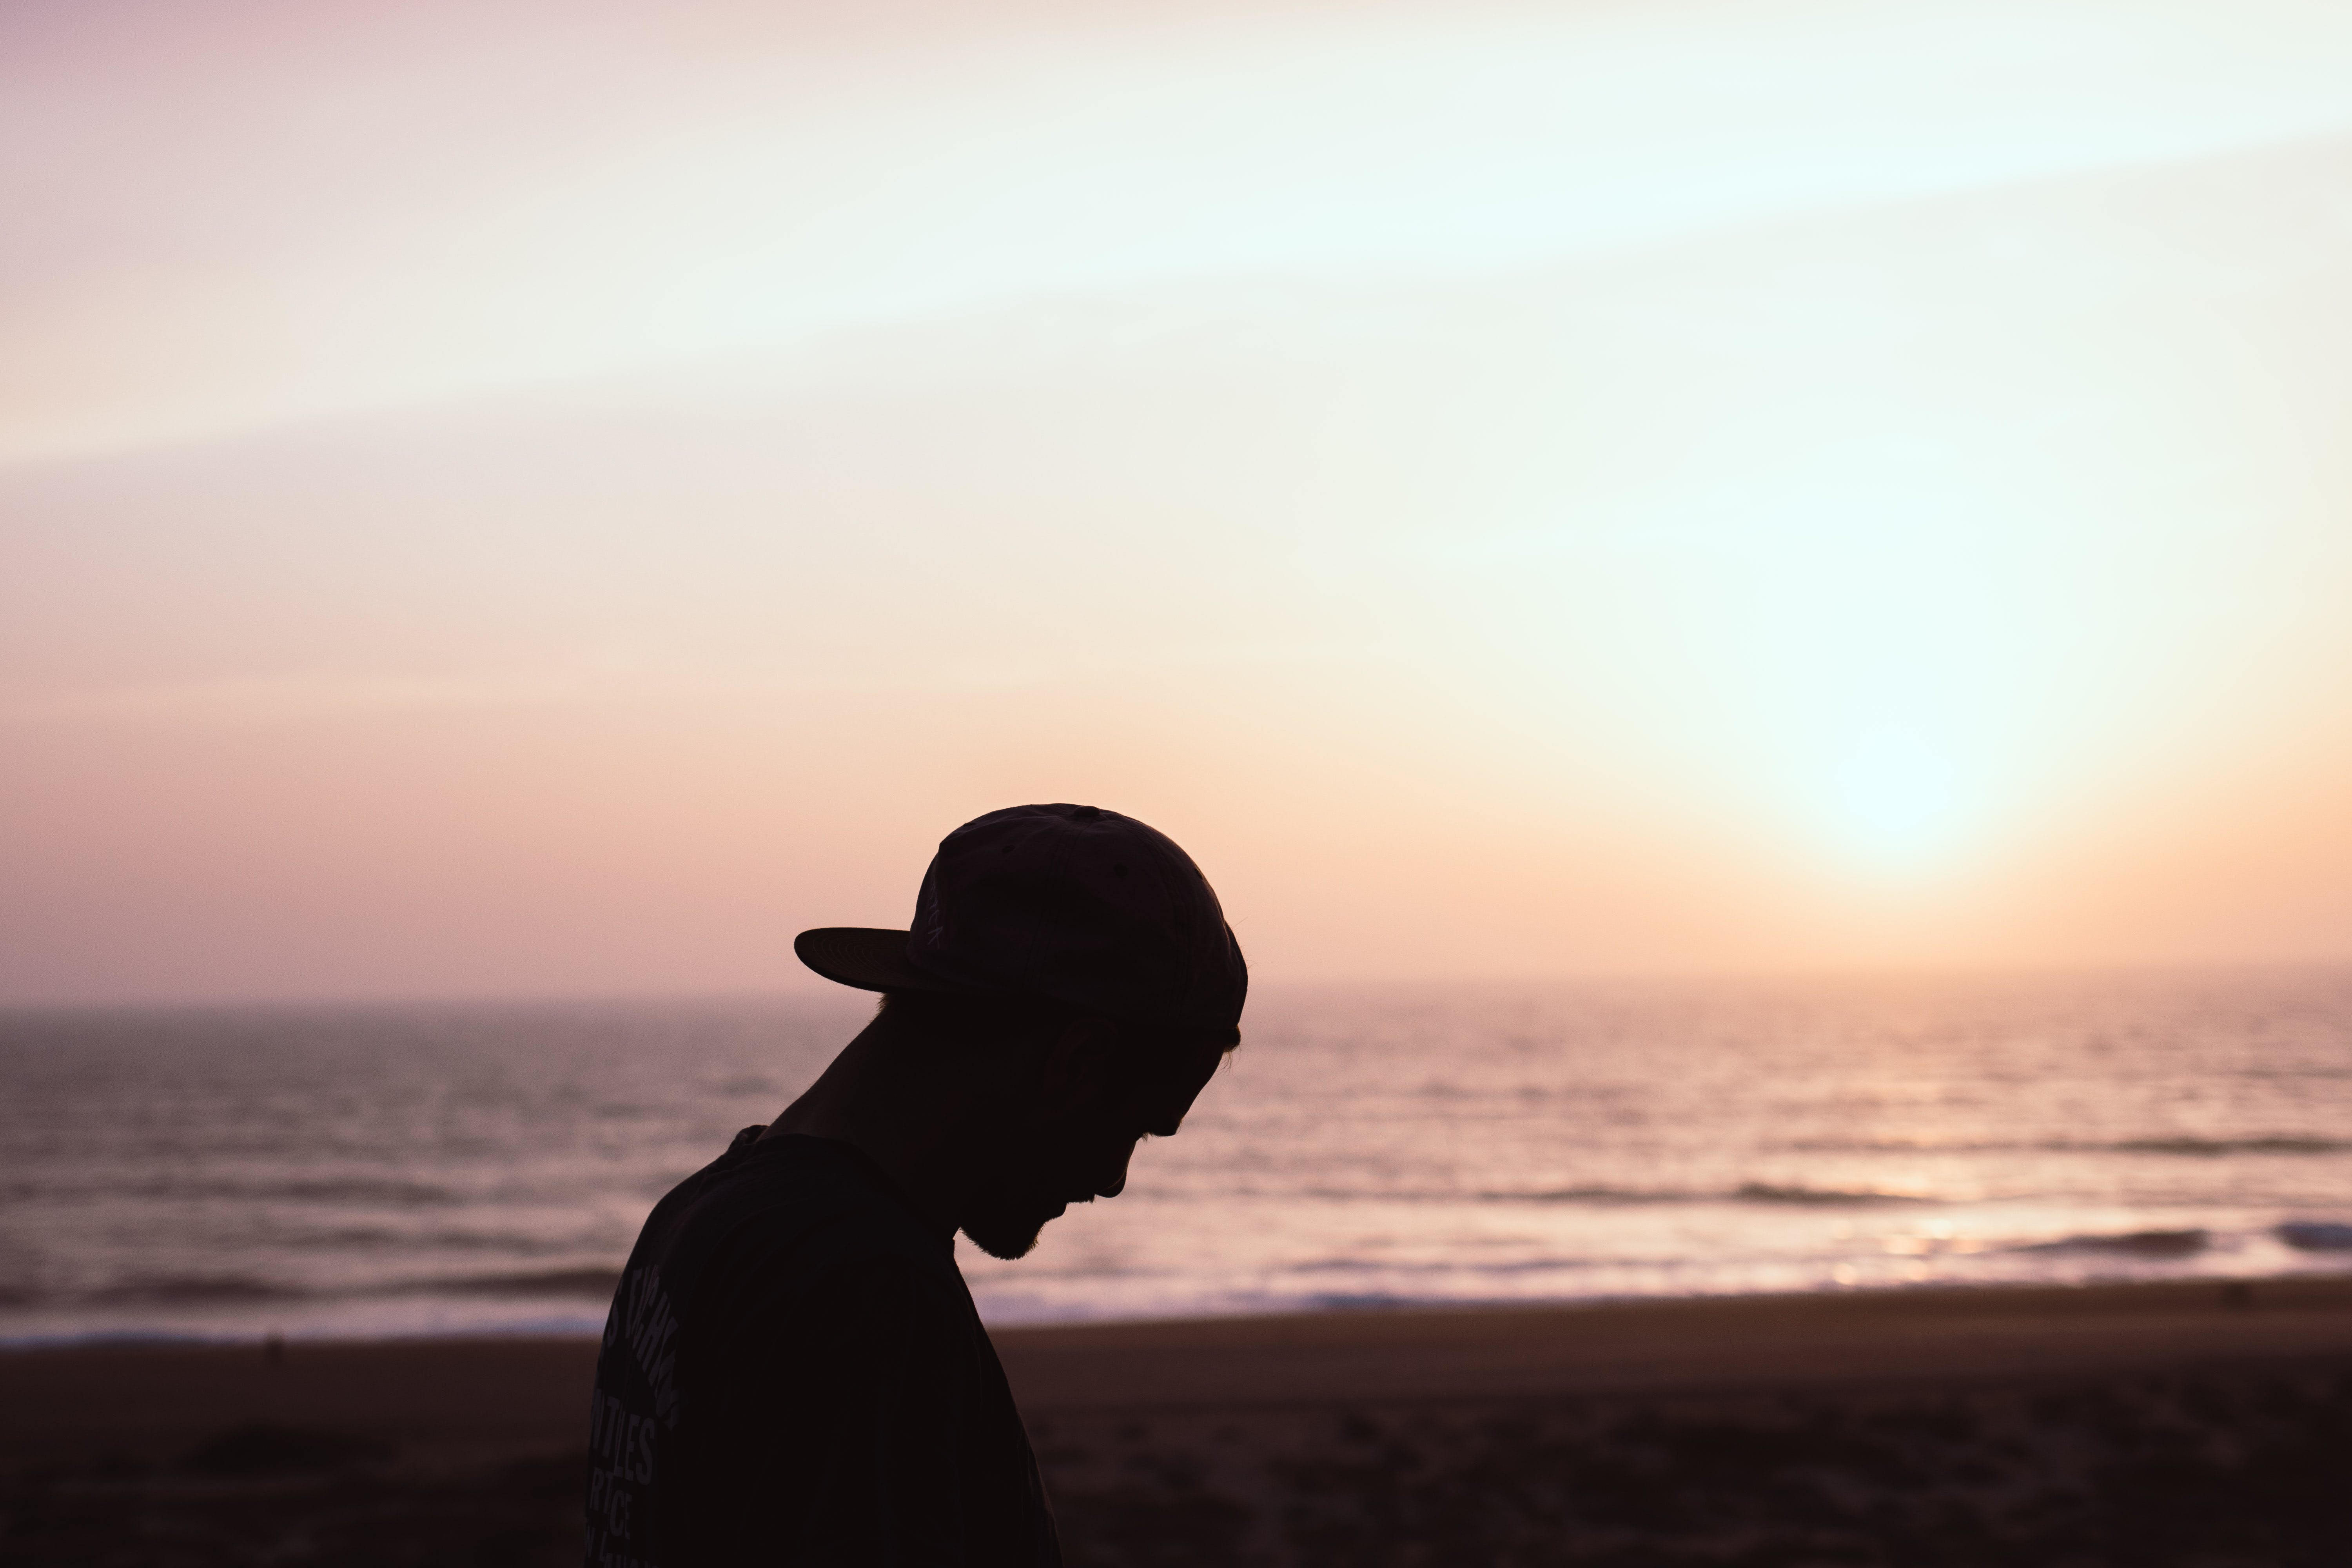 Silhouette of Man Wearing Cap at the Beach